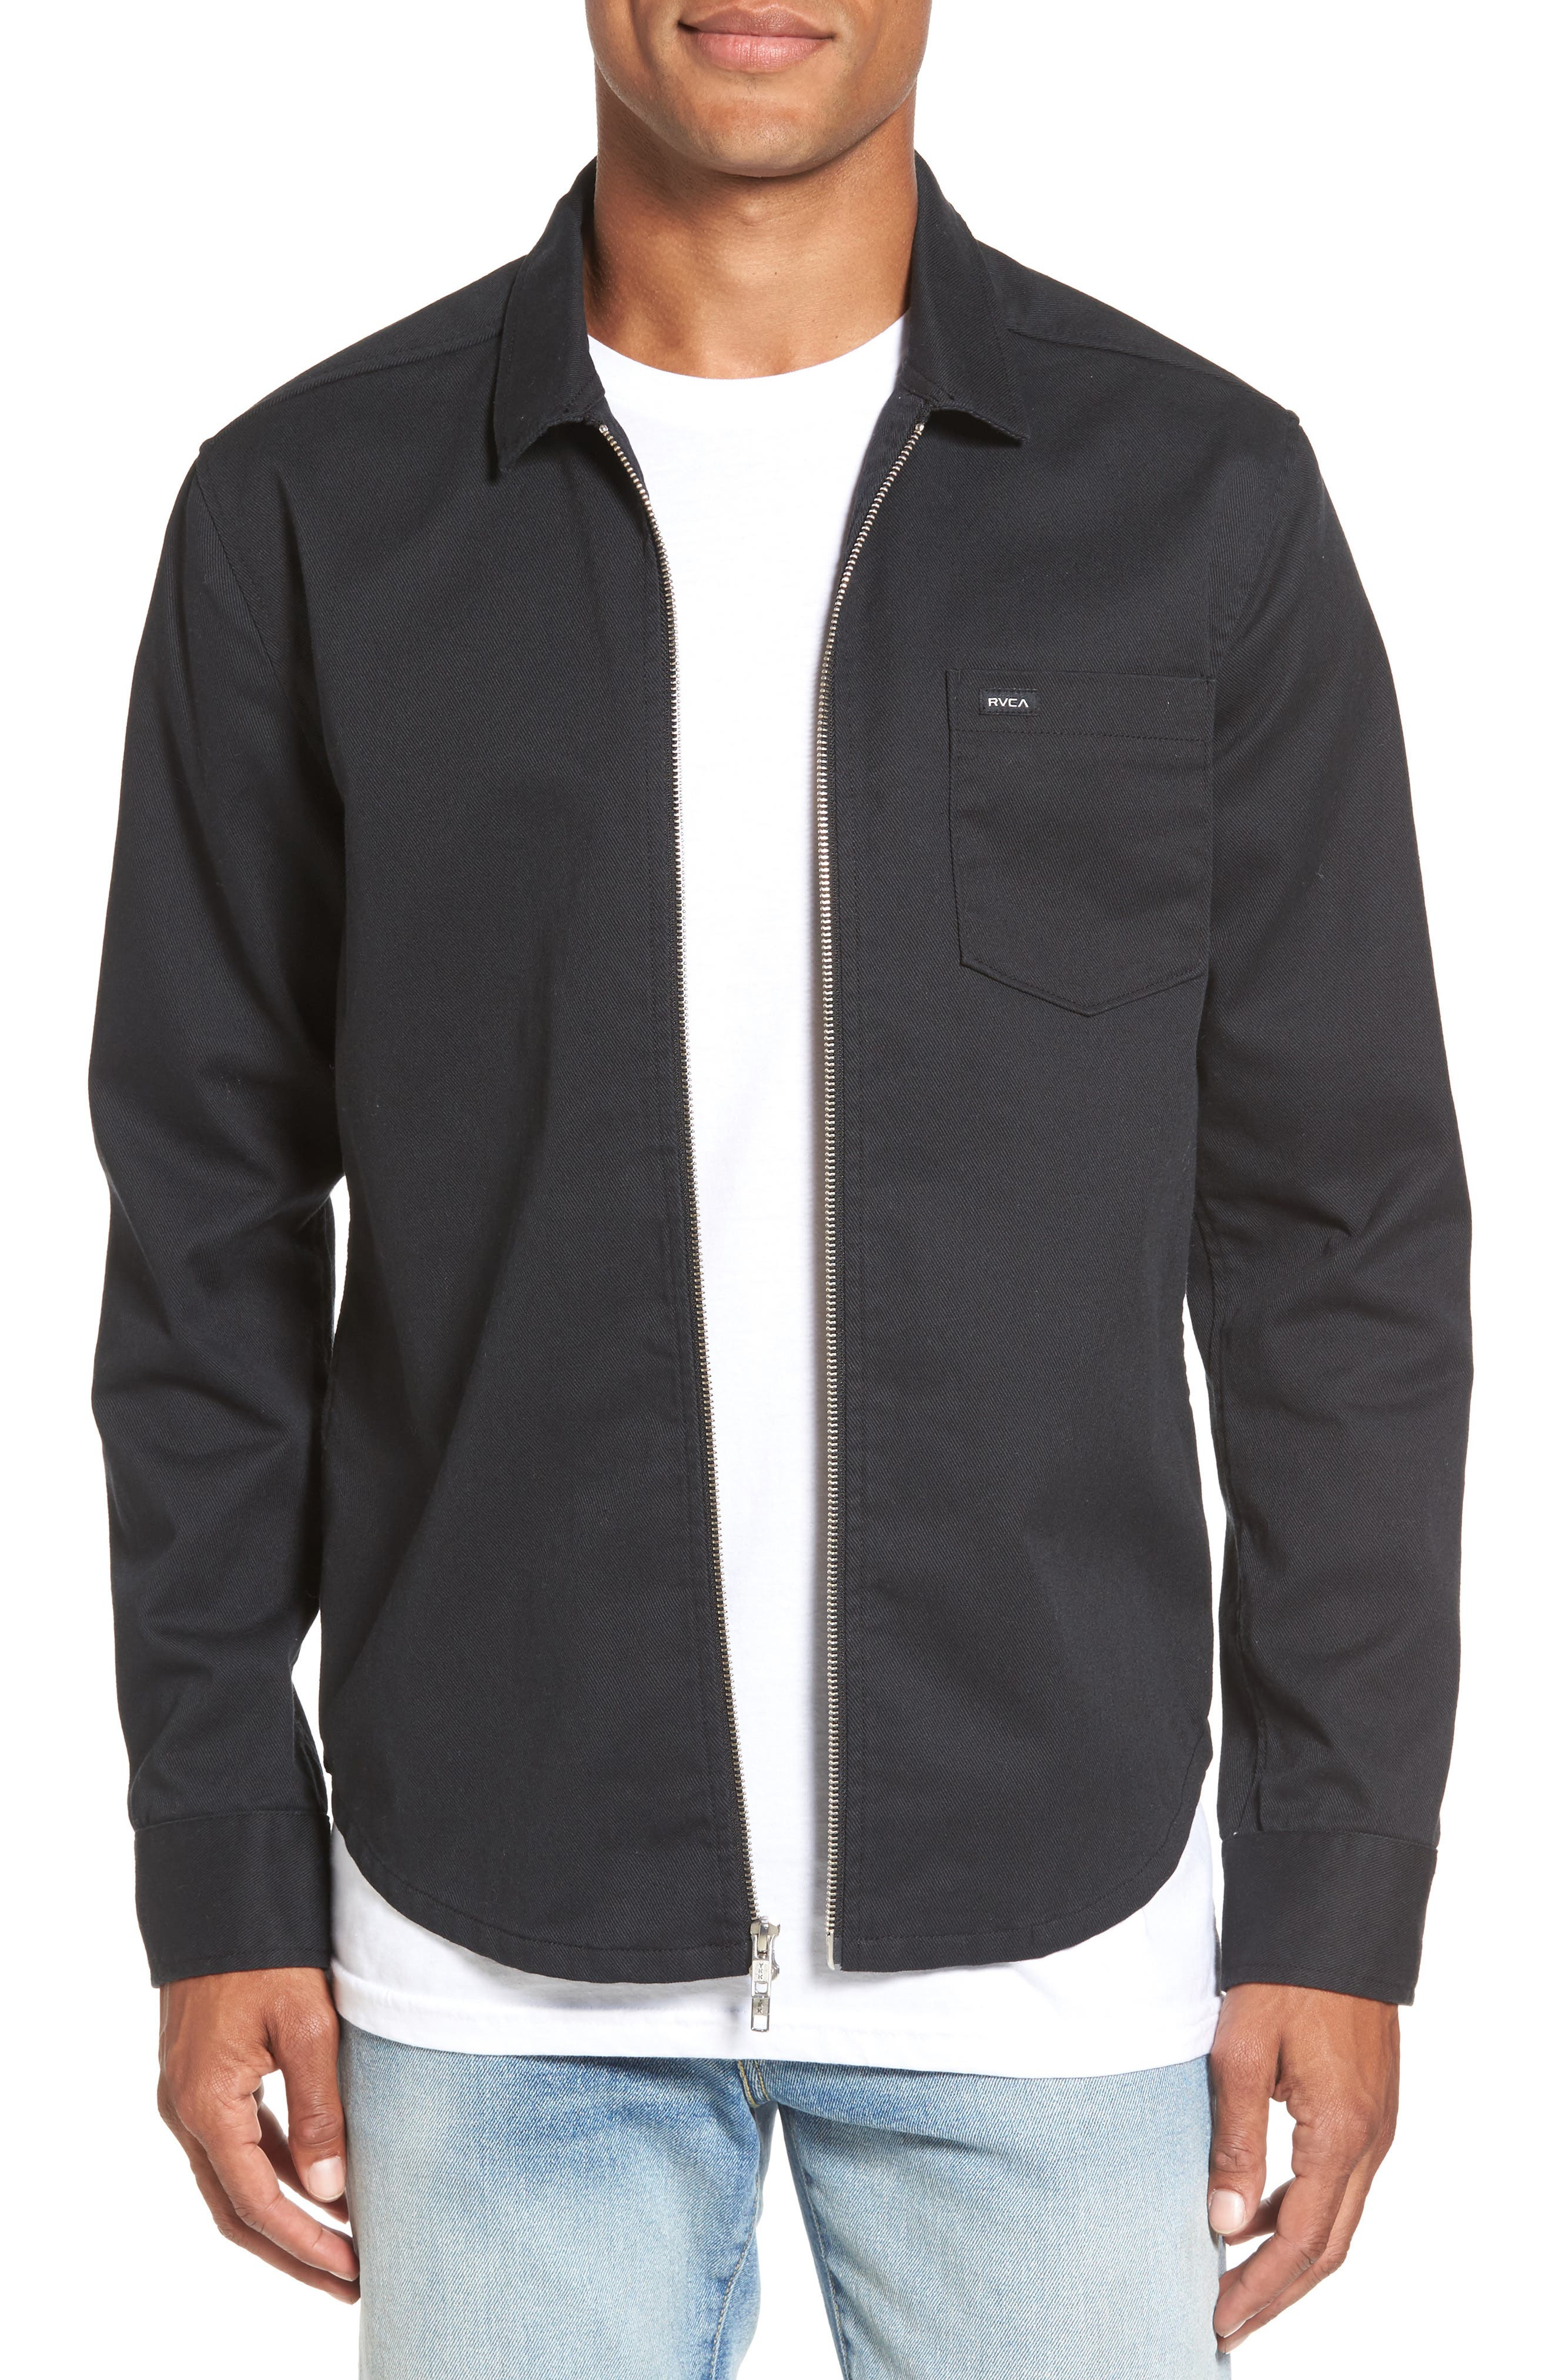 Alternate Image 1 Selected - RVCA Rex Shirt Jacket